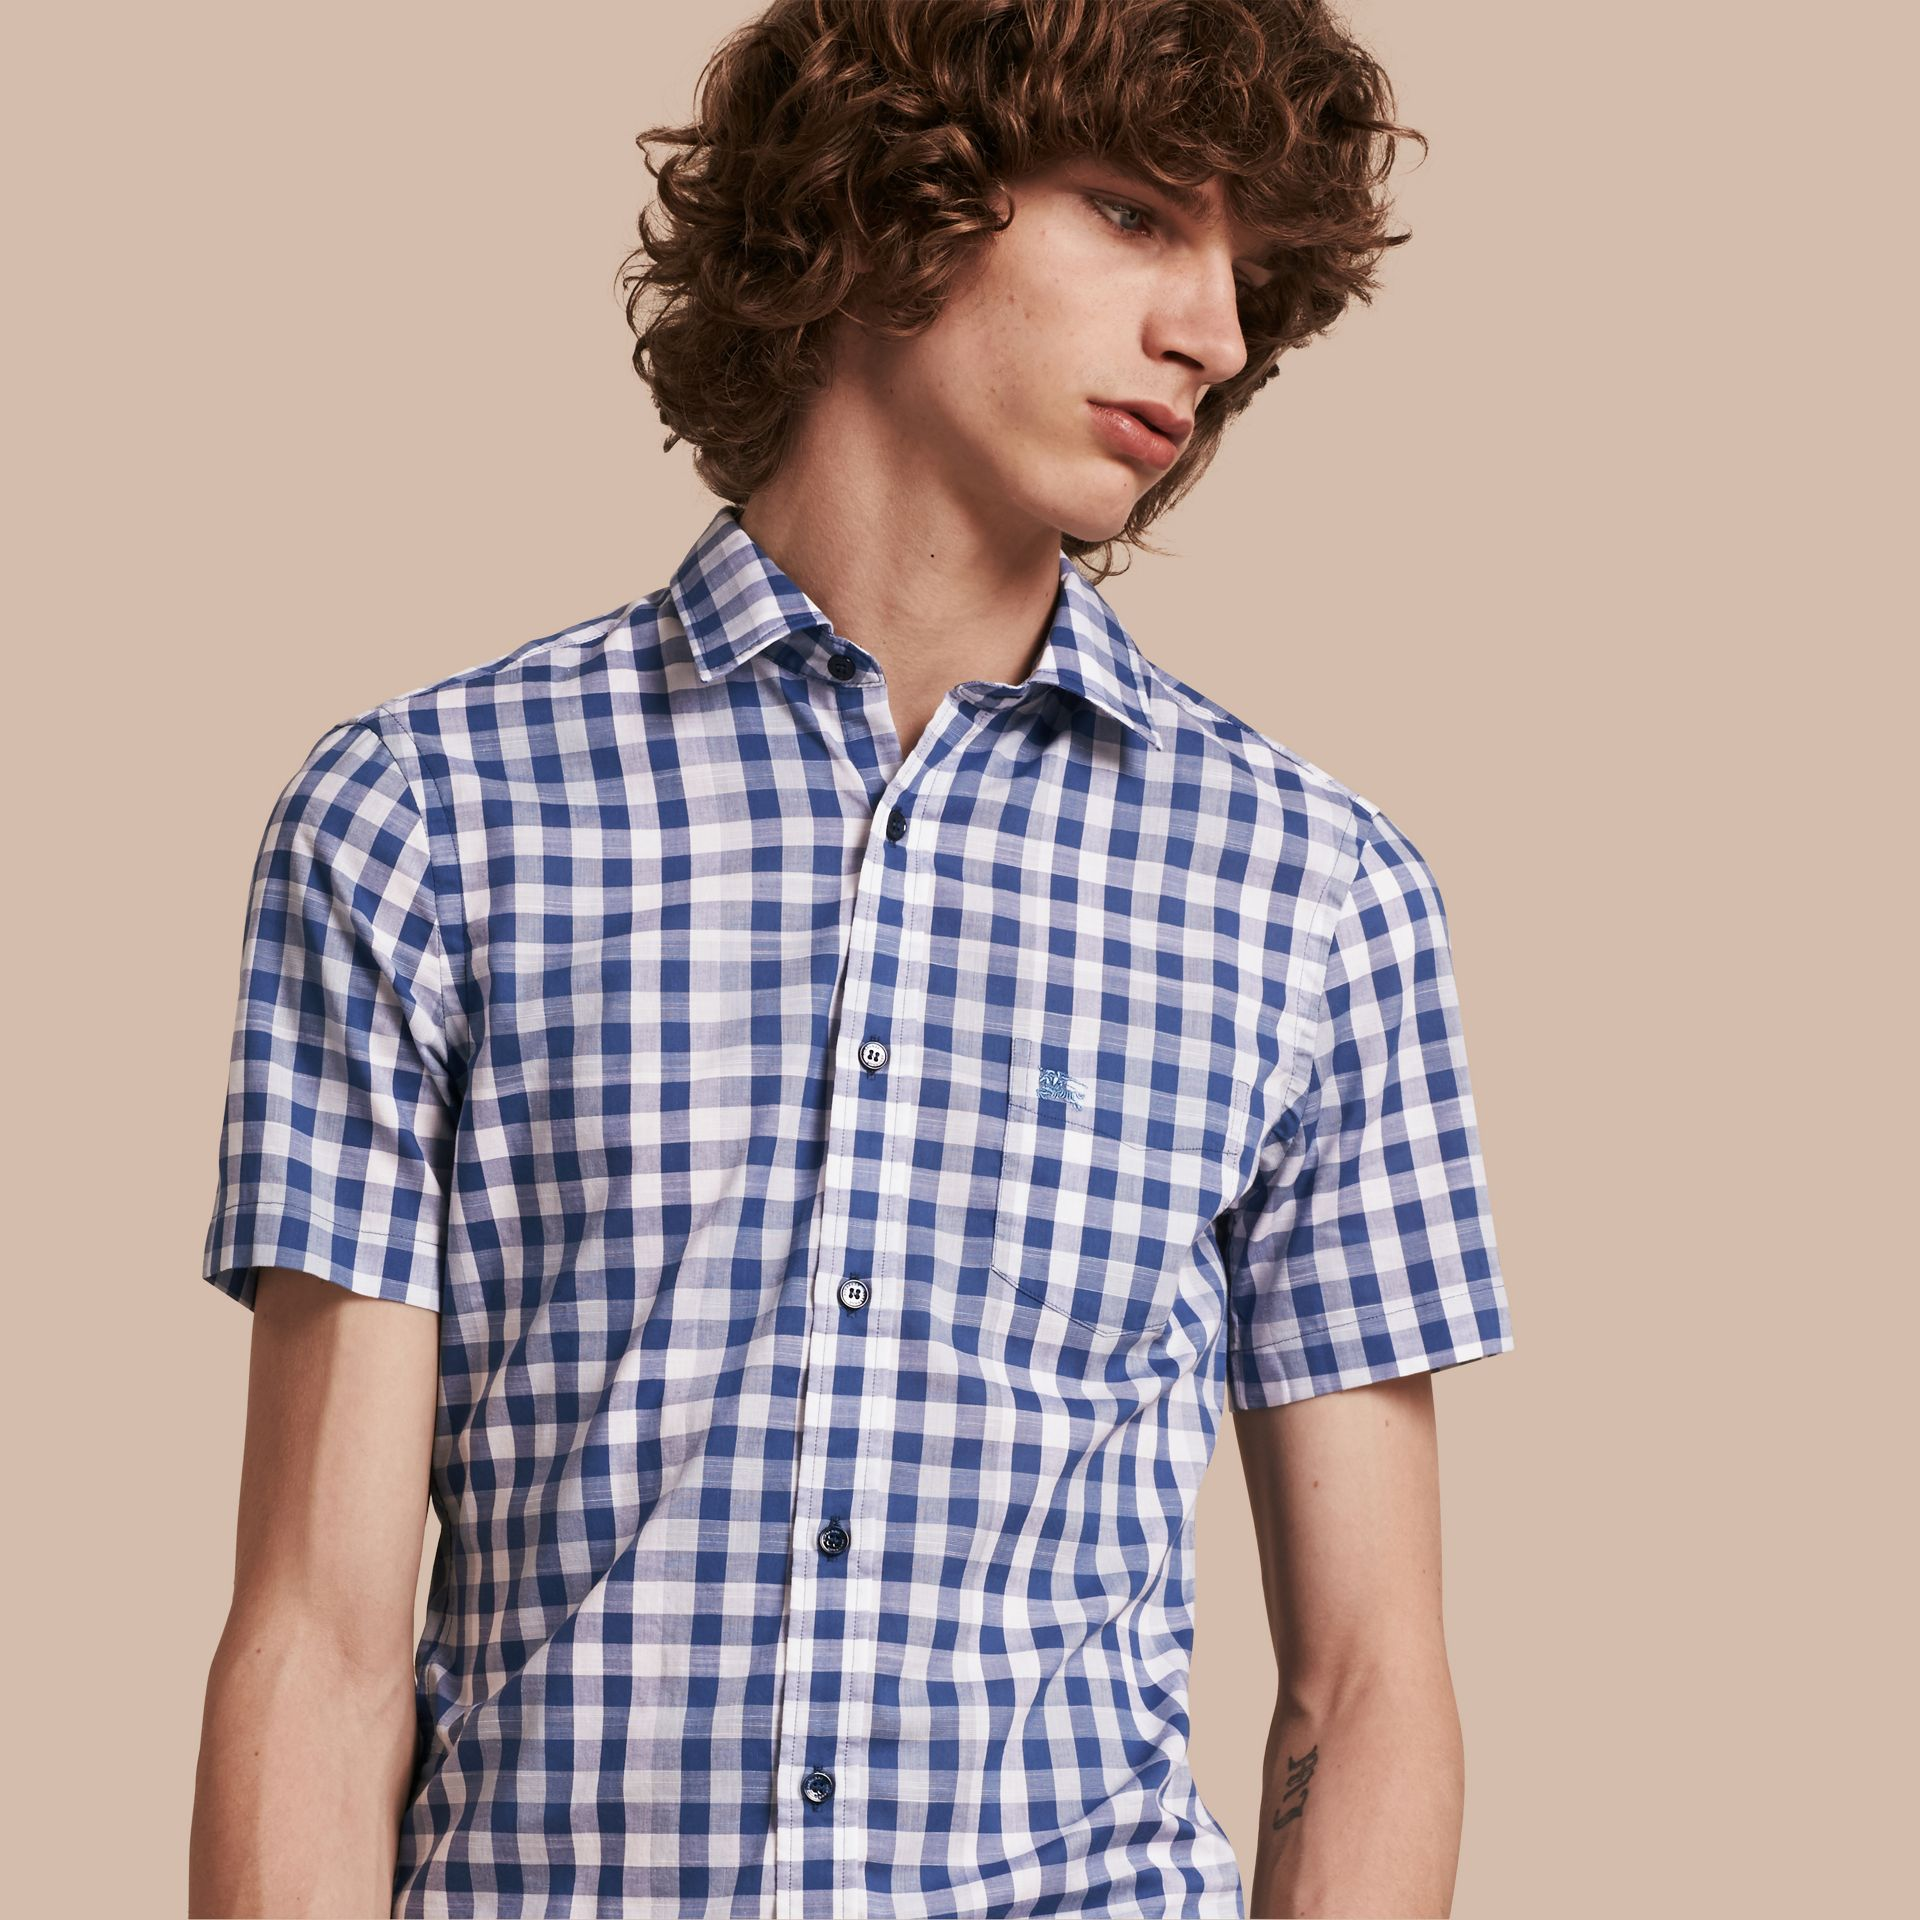 Bright steel blue Short-sleeved Gingham Cotton Shirt Bright Steel Blue - gallery image 1